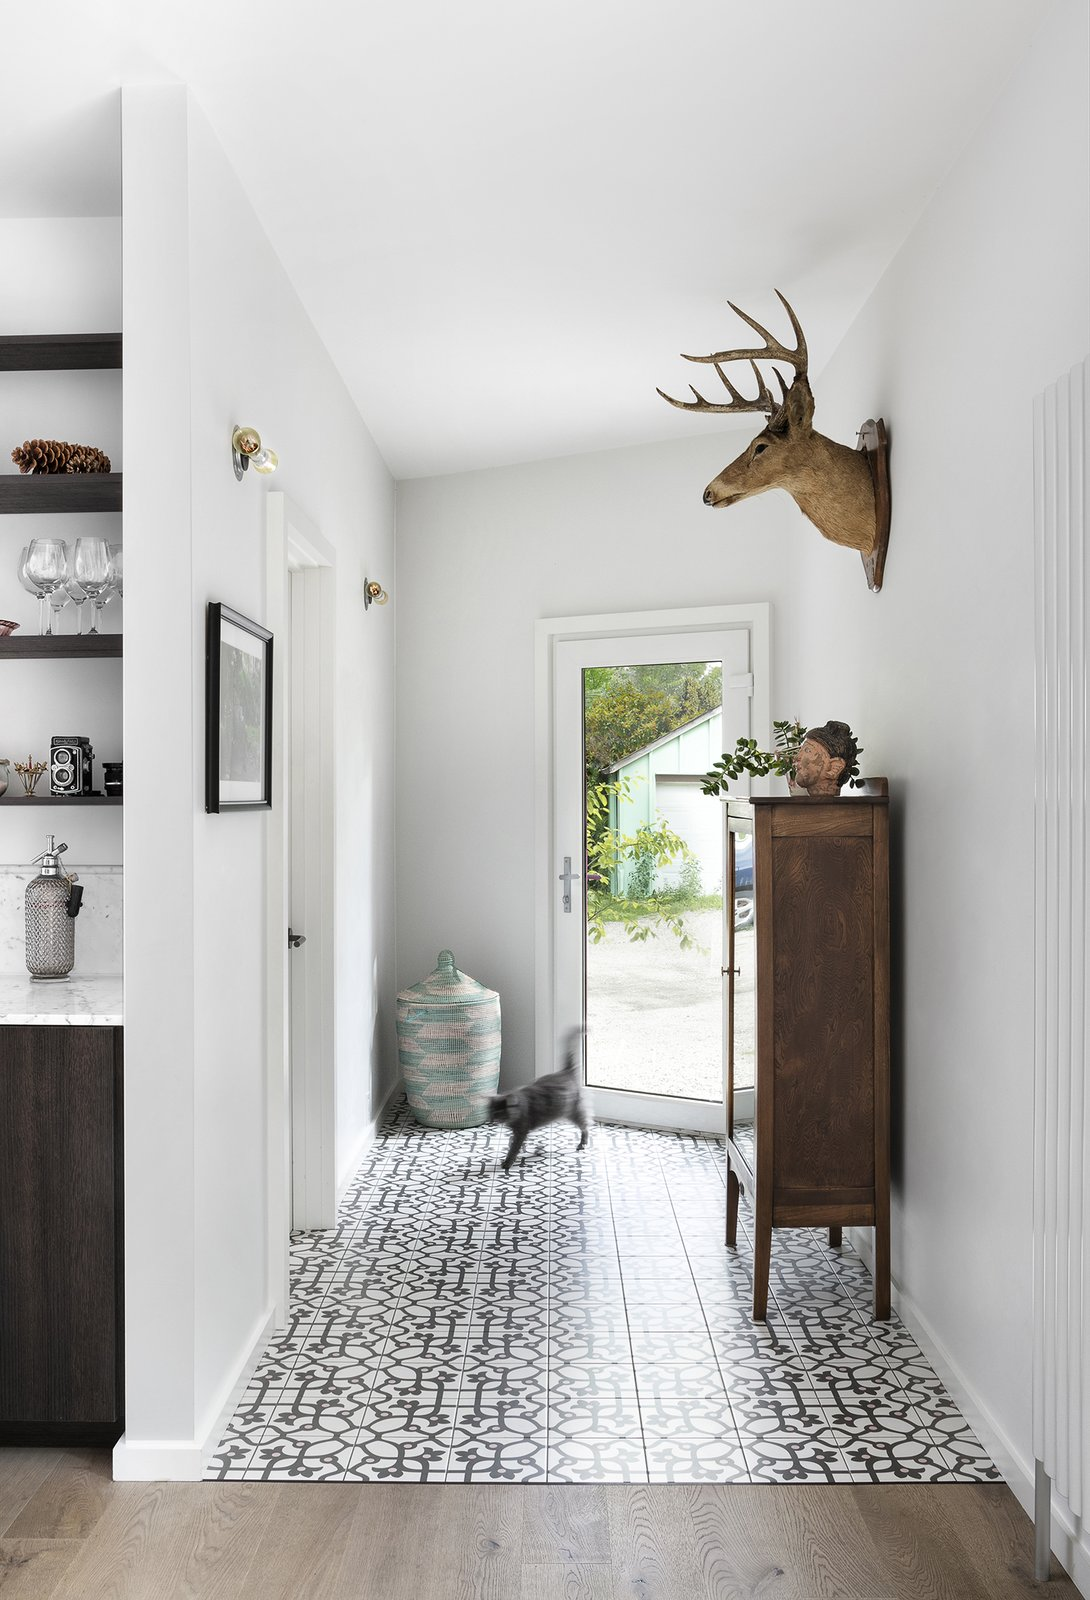 Hallway and Medium Hardwood Floor Jujol Basalto porcelain tiles, sourced from Mettro Source, line the floor just inside the front entry.  Photo 4 of 8 in Quirky Toronto House Is Far From Color Shy